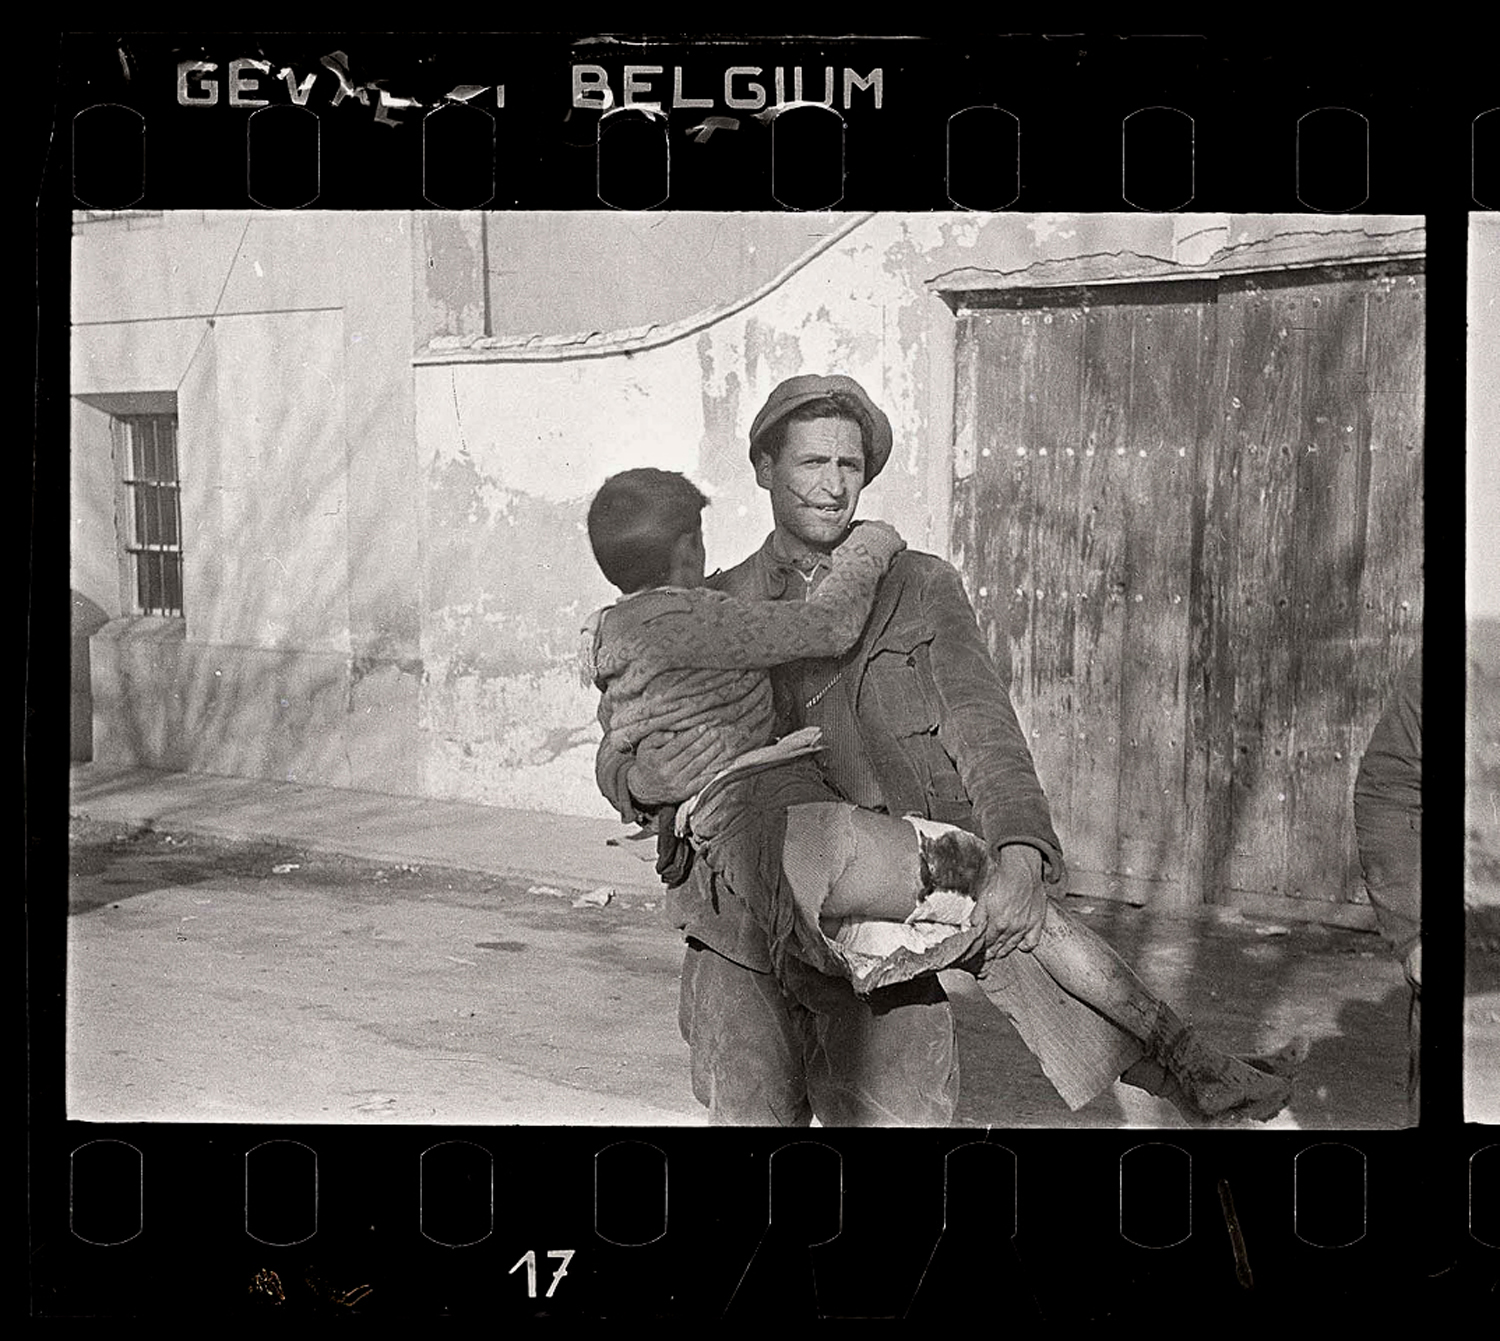 Man carrying wounded boy, Battle of Teruel, Spain, December 1937